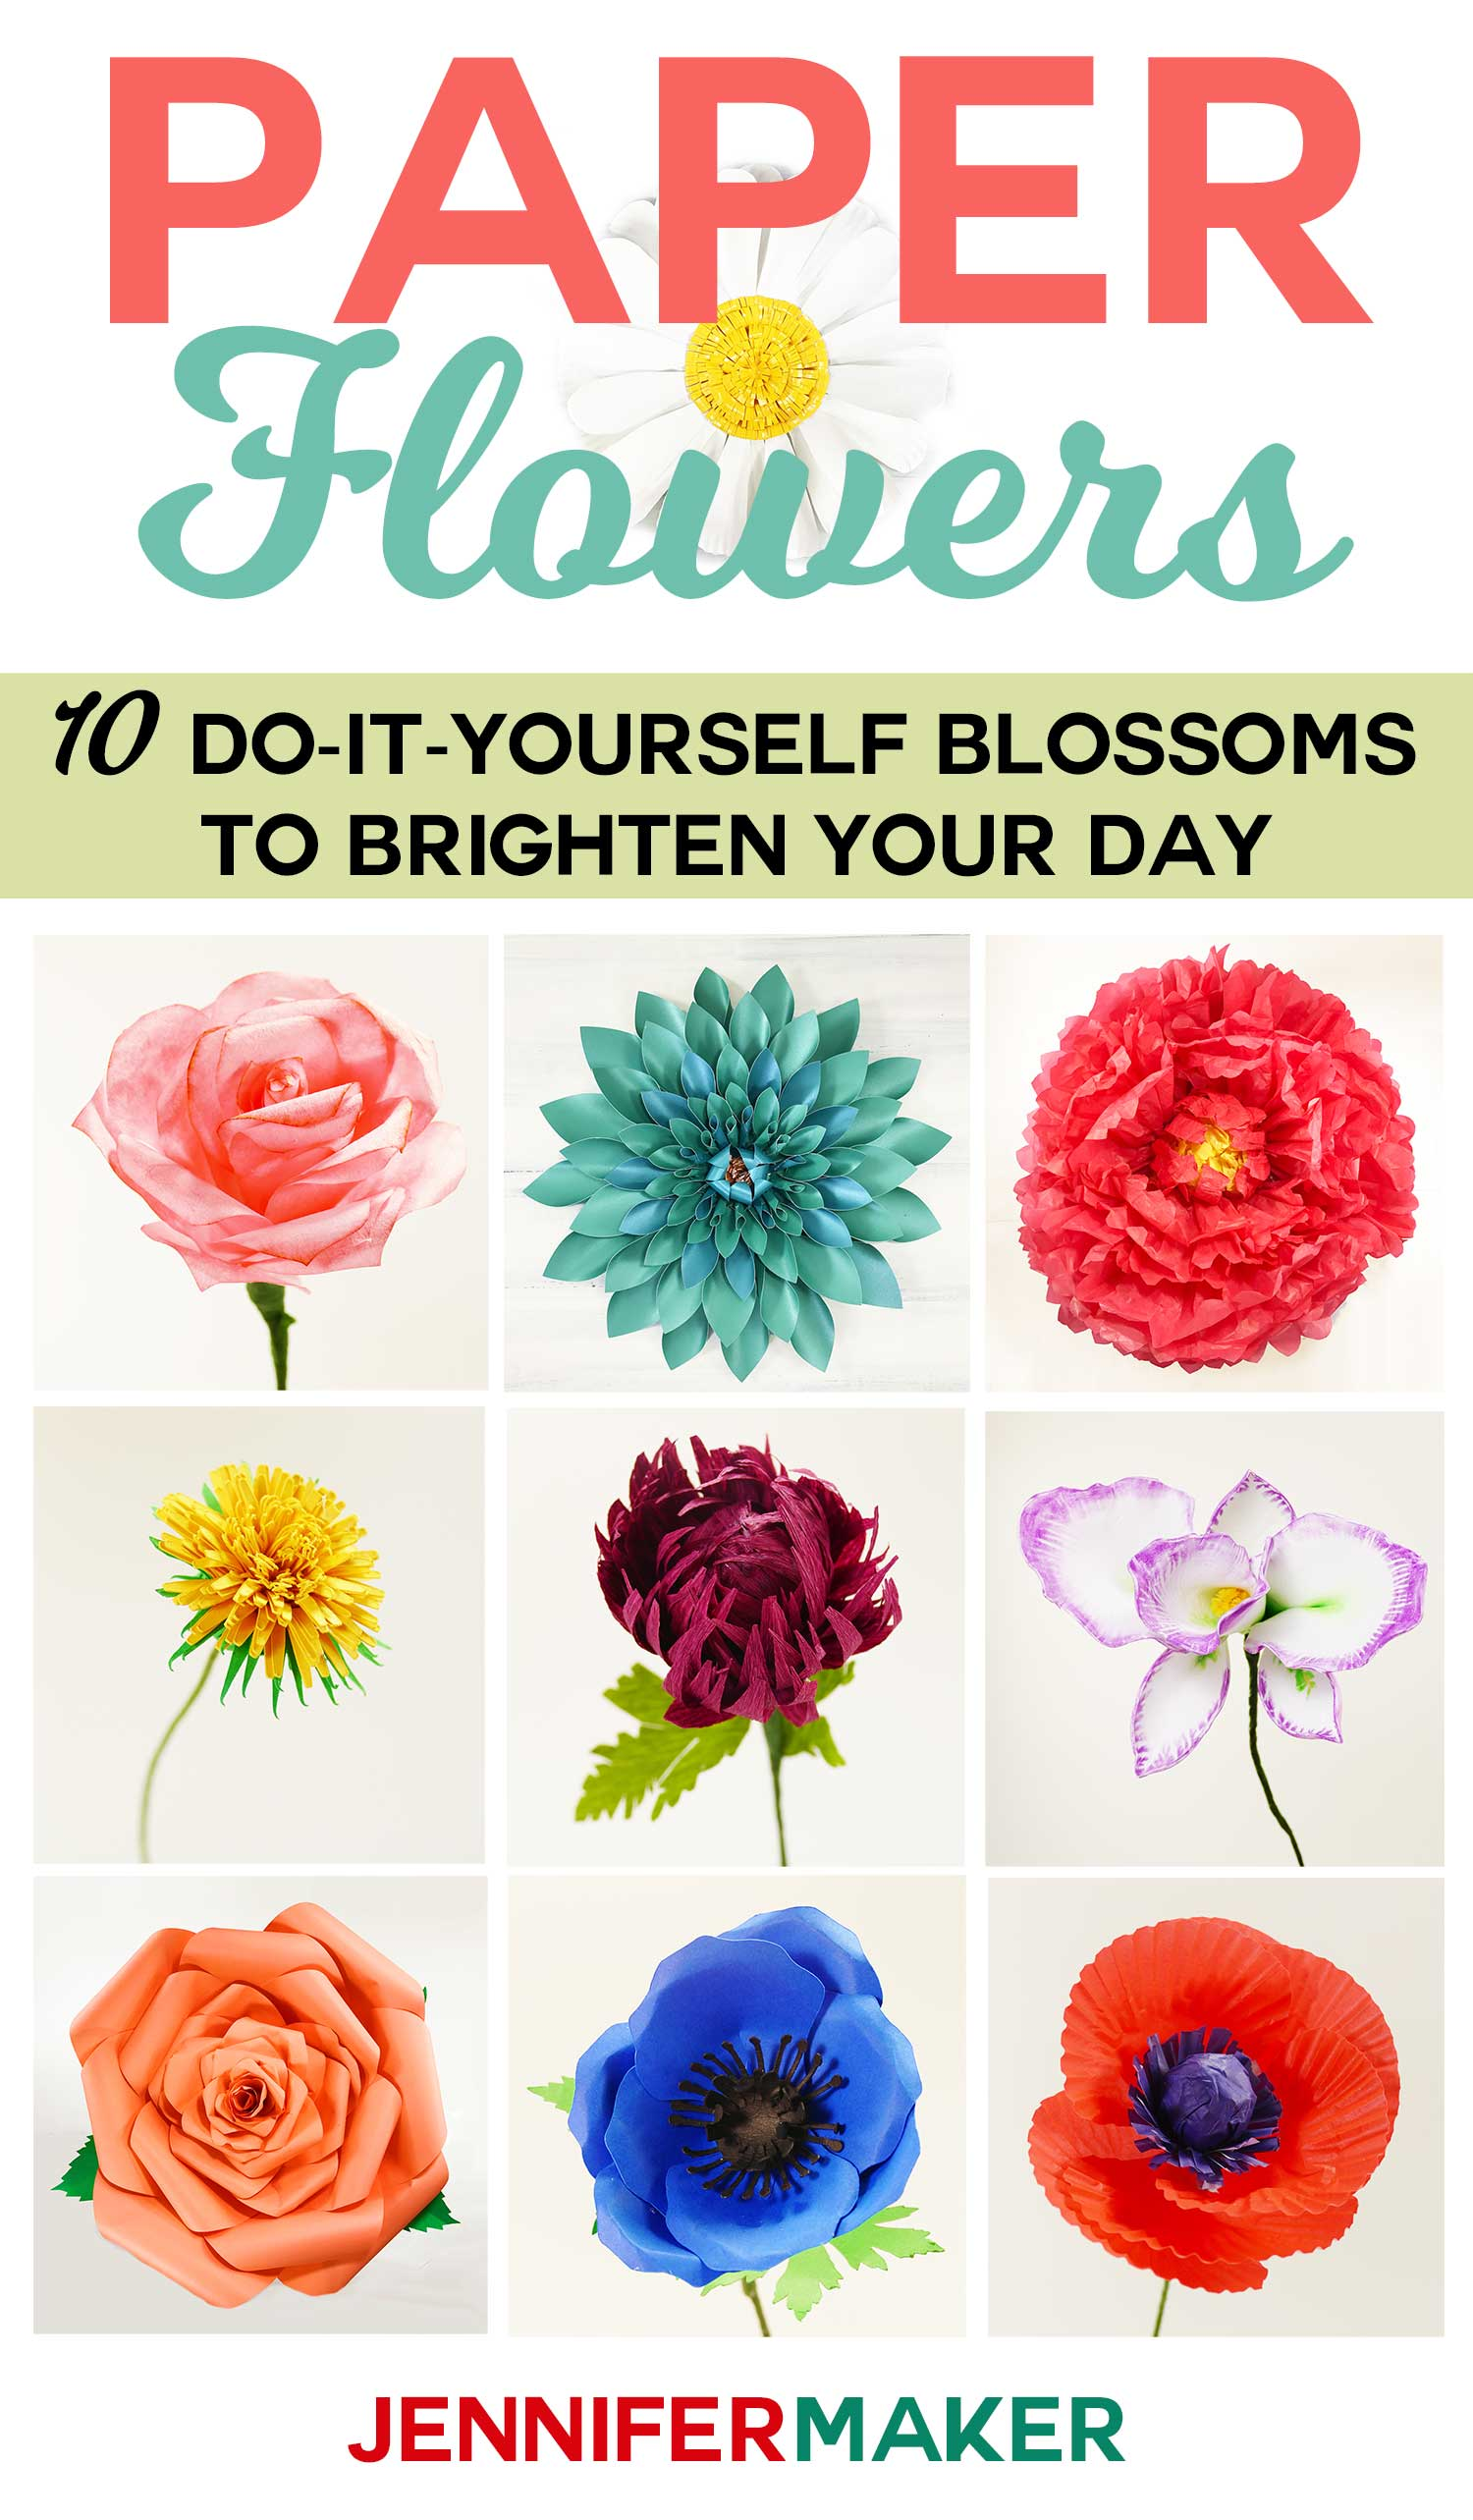 Paper Flowers Book: 10 Do-It-Yourself Blossoms to Bright Your Day by Jennifer Maker | #paperflowers #diy #papercrafts